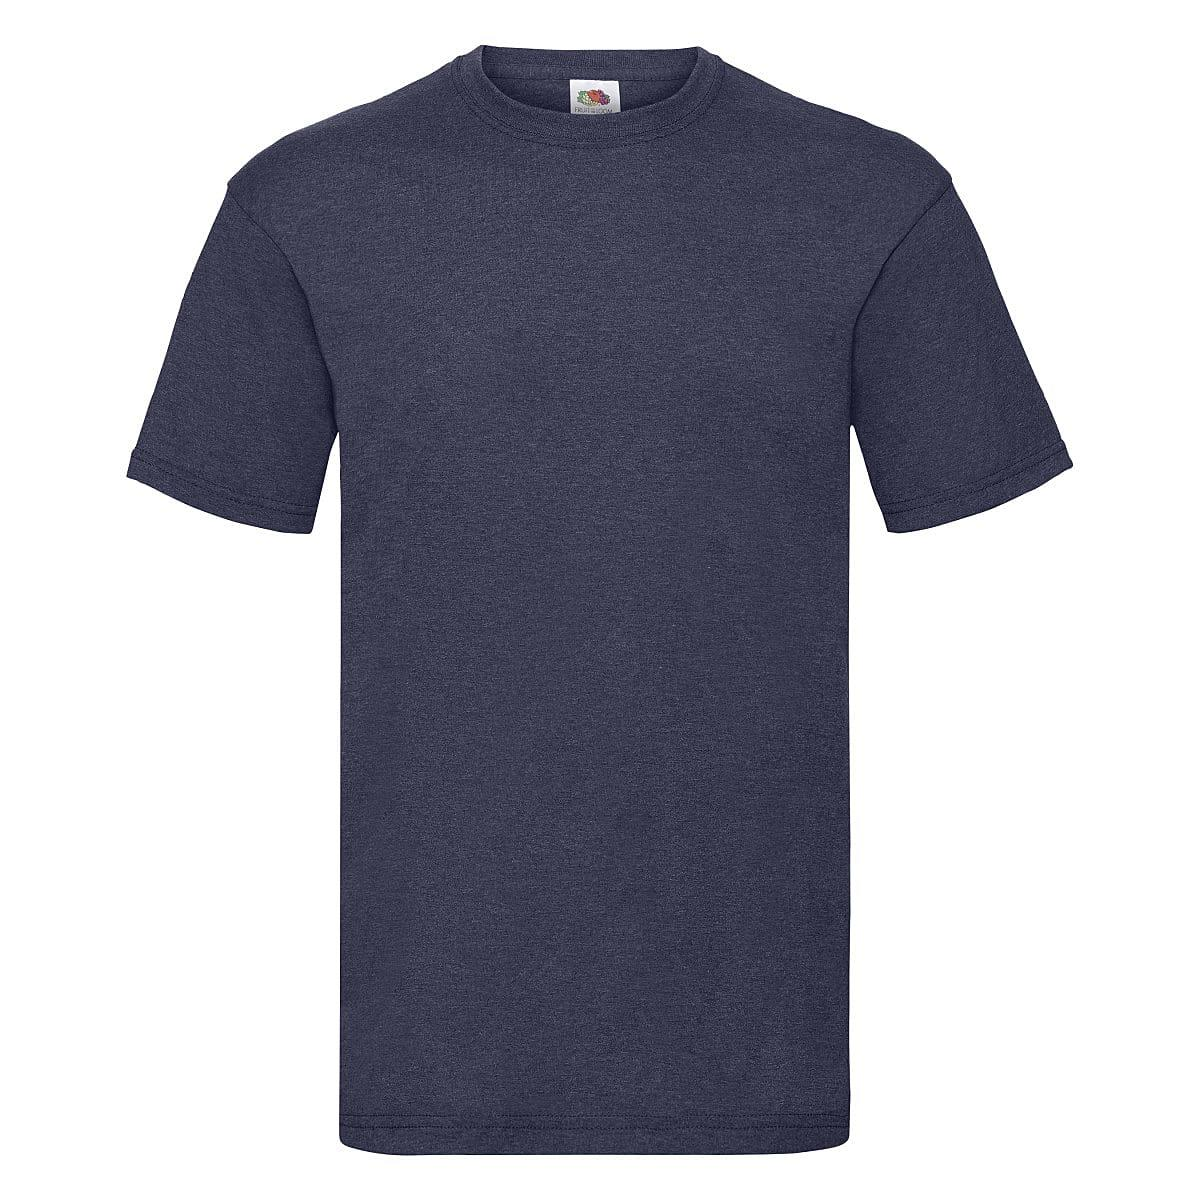 Fruit Of The Loom Valueweight T-Shirt in Vintage Heather Navy (Product Code: 61036)